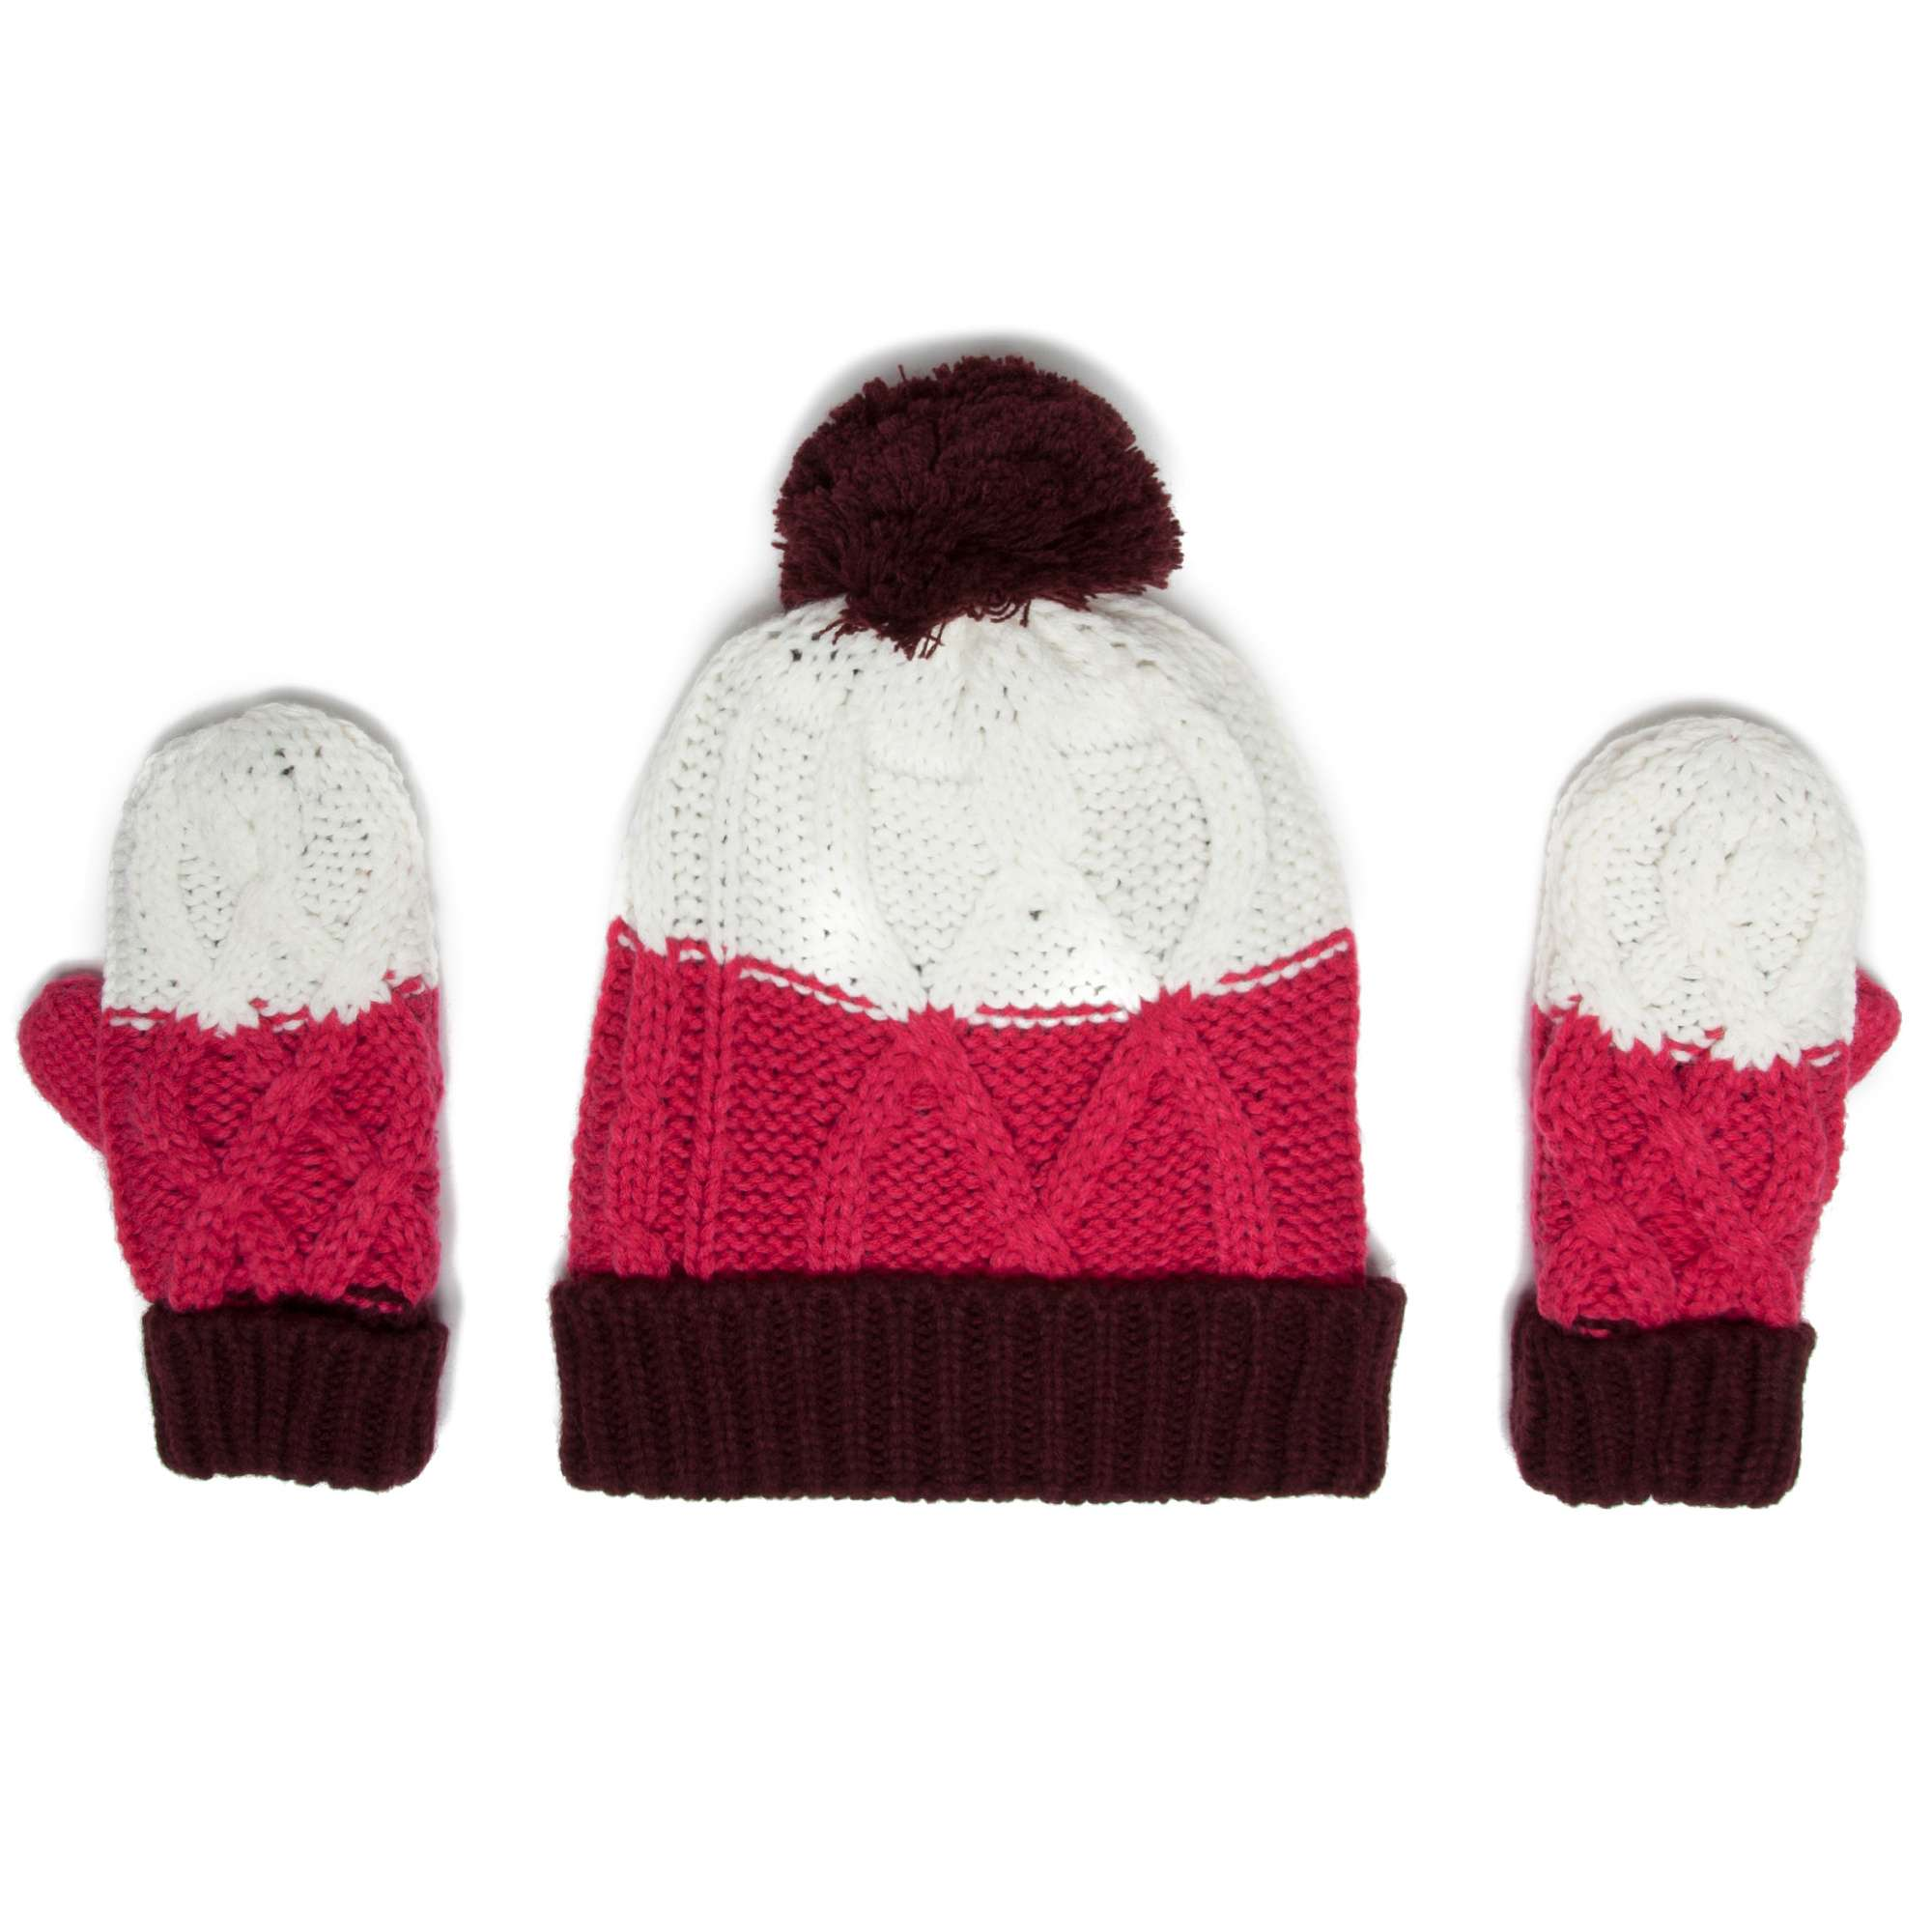 PETER STORM Girls' Hat and Glove Set